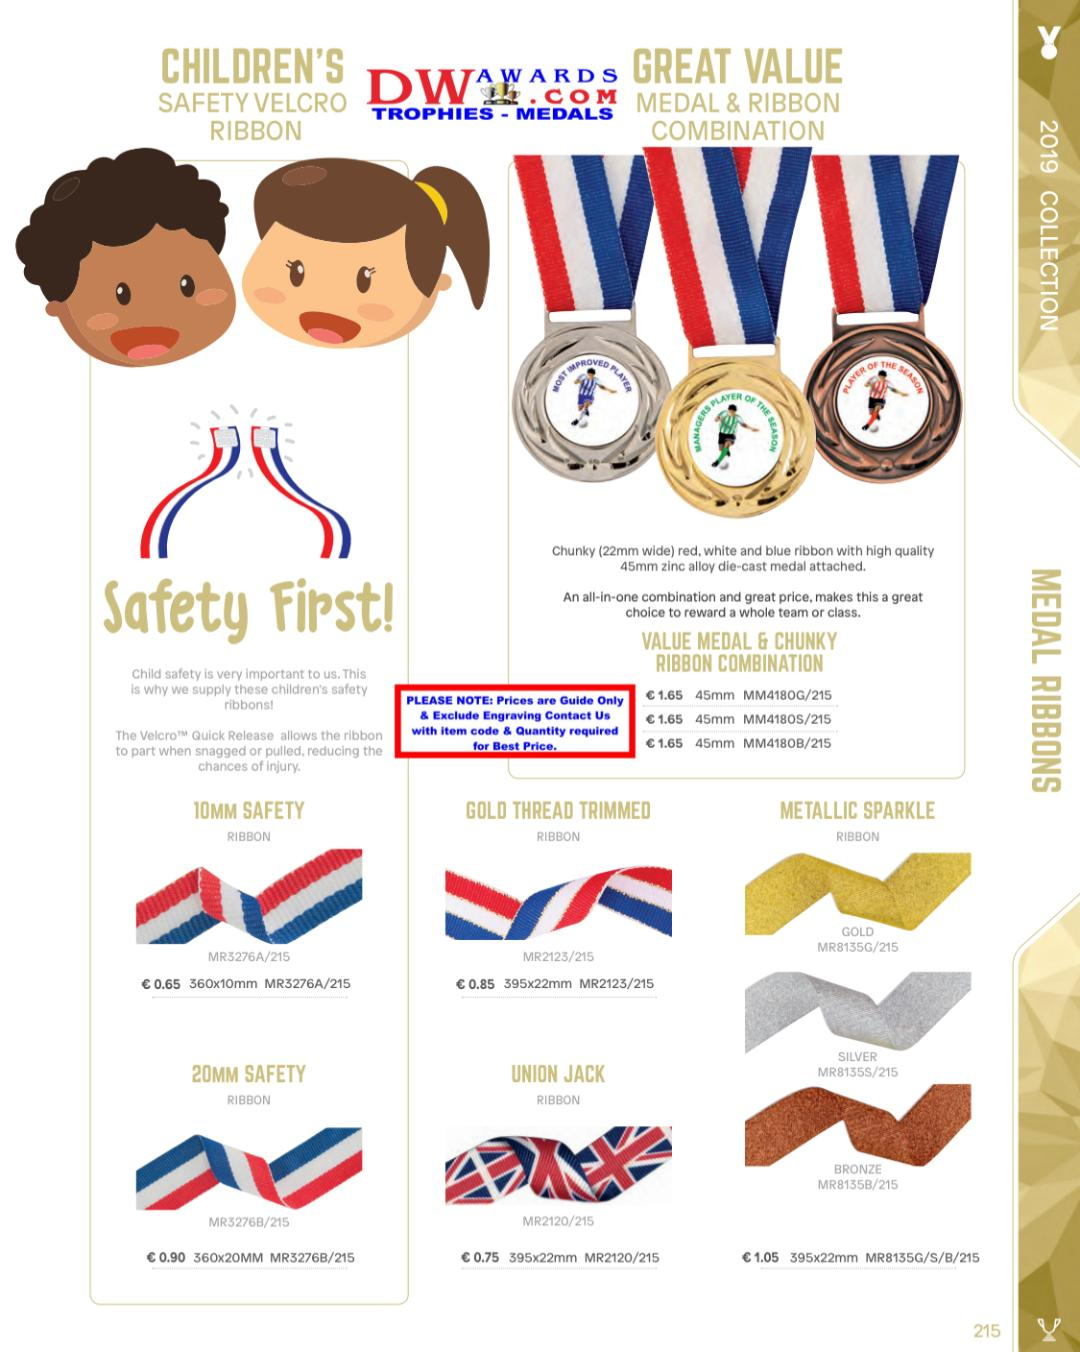 DW Awards Medal Ribbons - Trophies-Medals ie